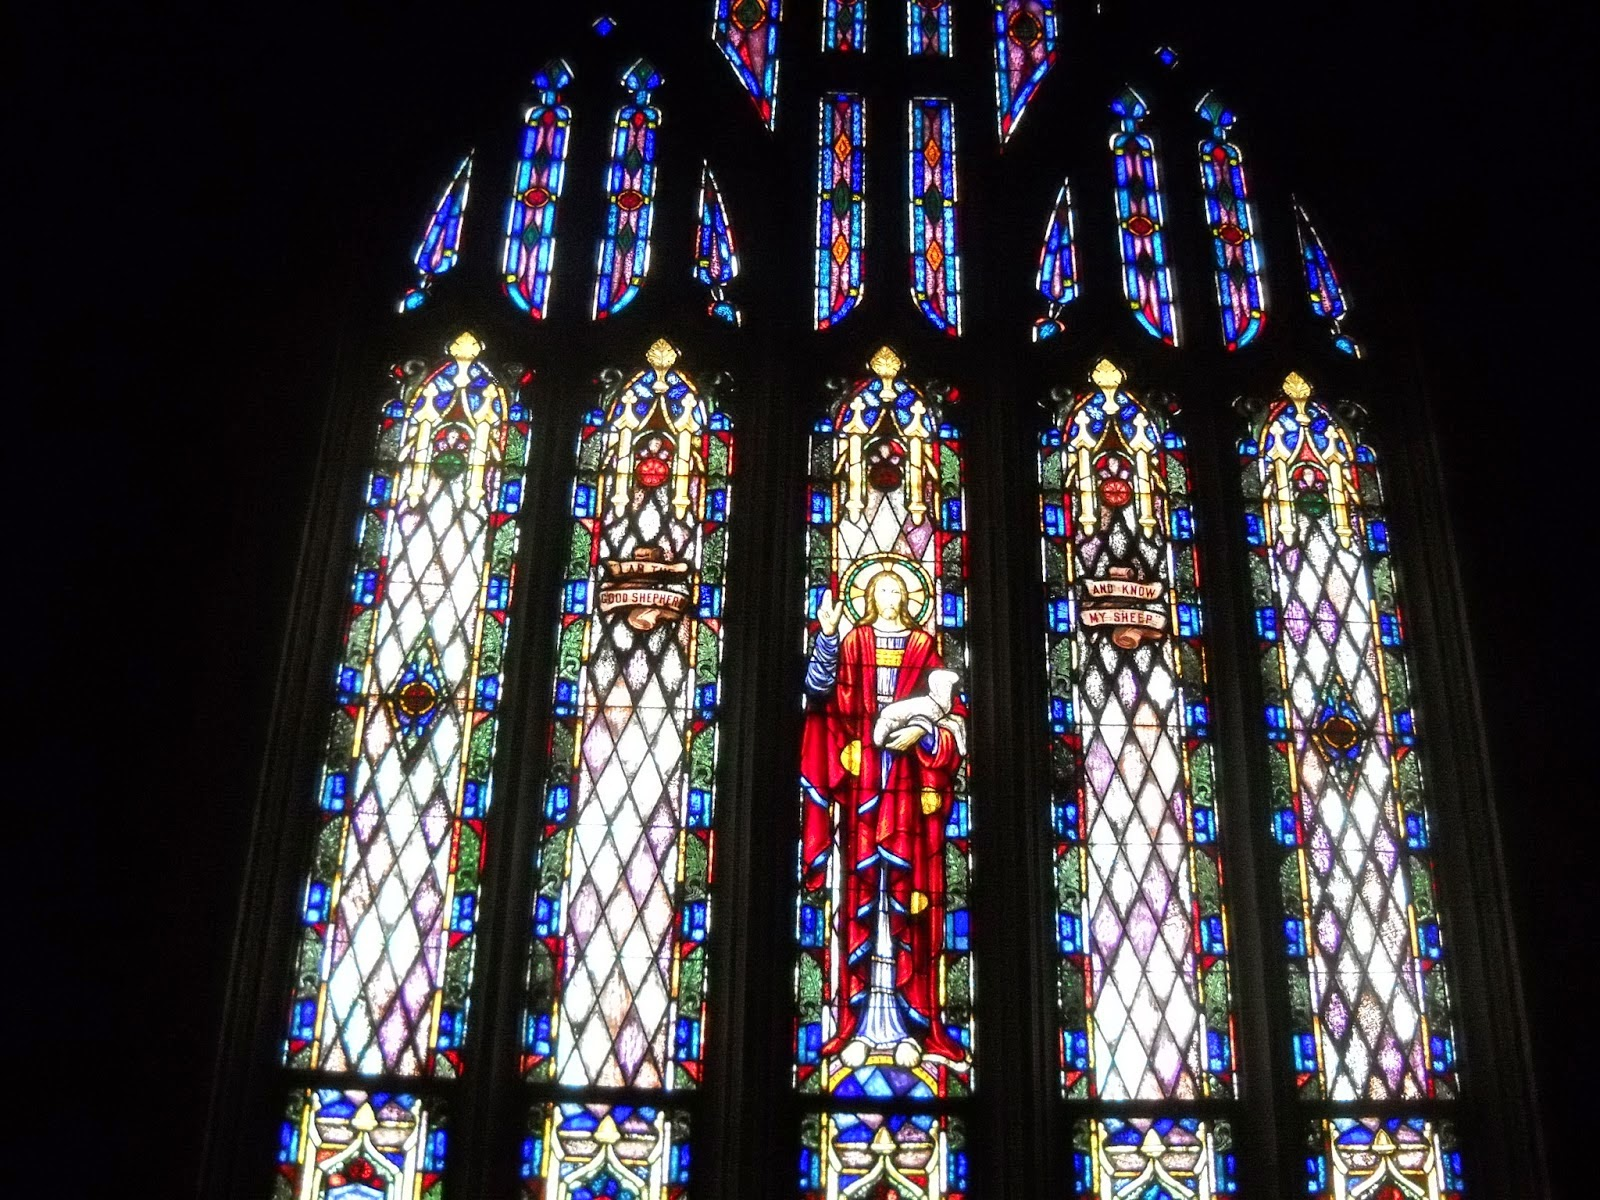 Be sure and visit our lovely stained glass sanctuary